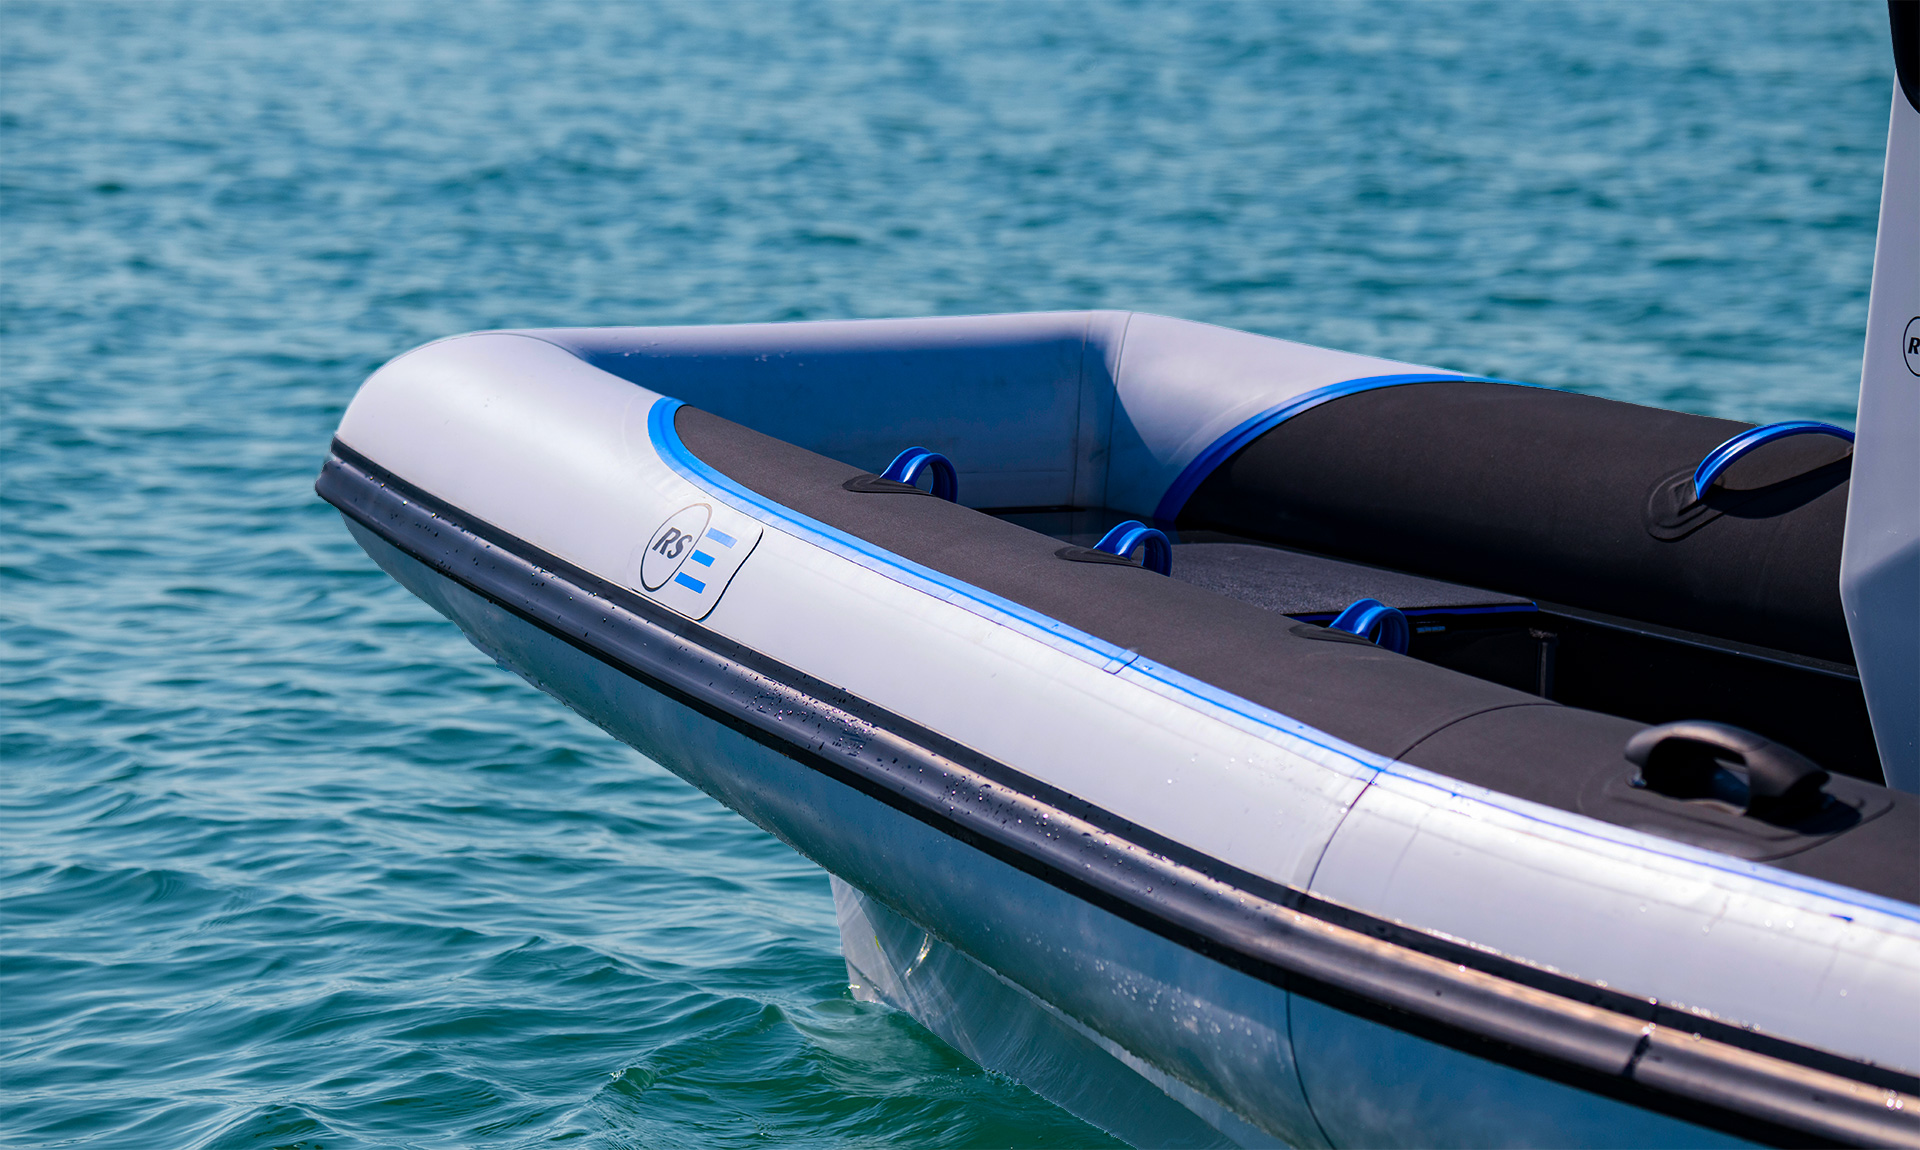 Electric Boat - Pulse 63 RIB - RS Electric Boats - Side bow view